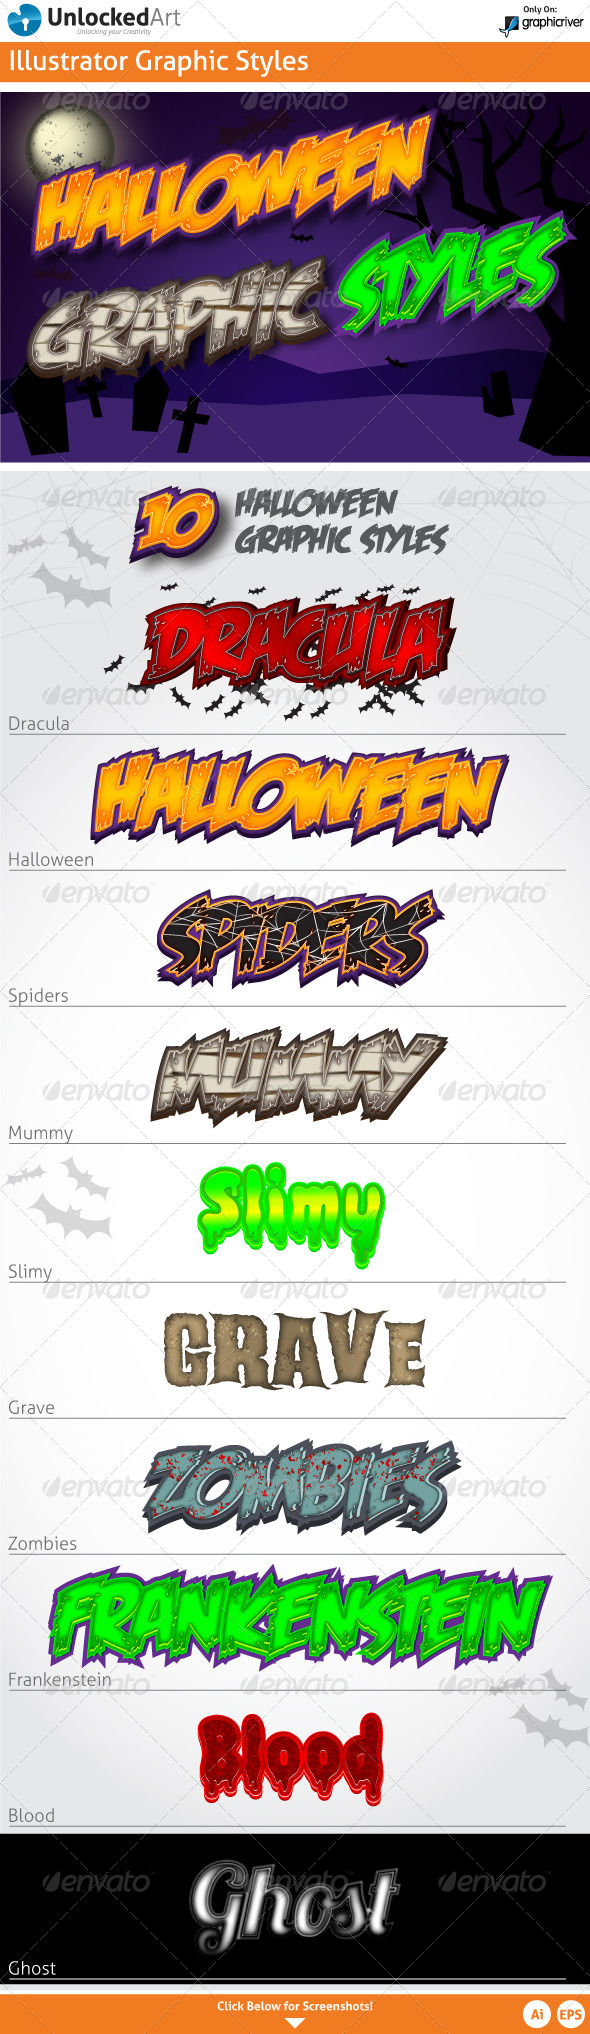 Halloween Graphic Styles - Illustrator Add-ons